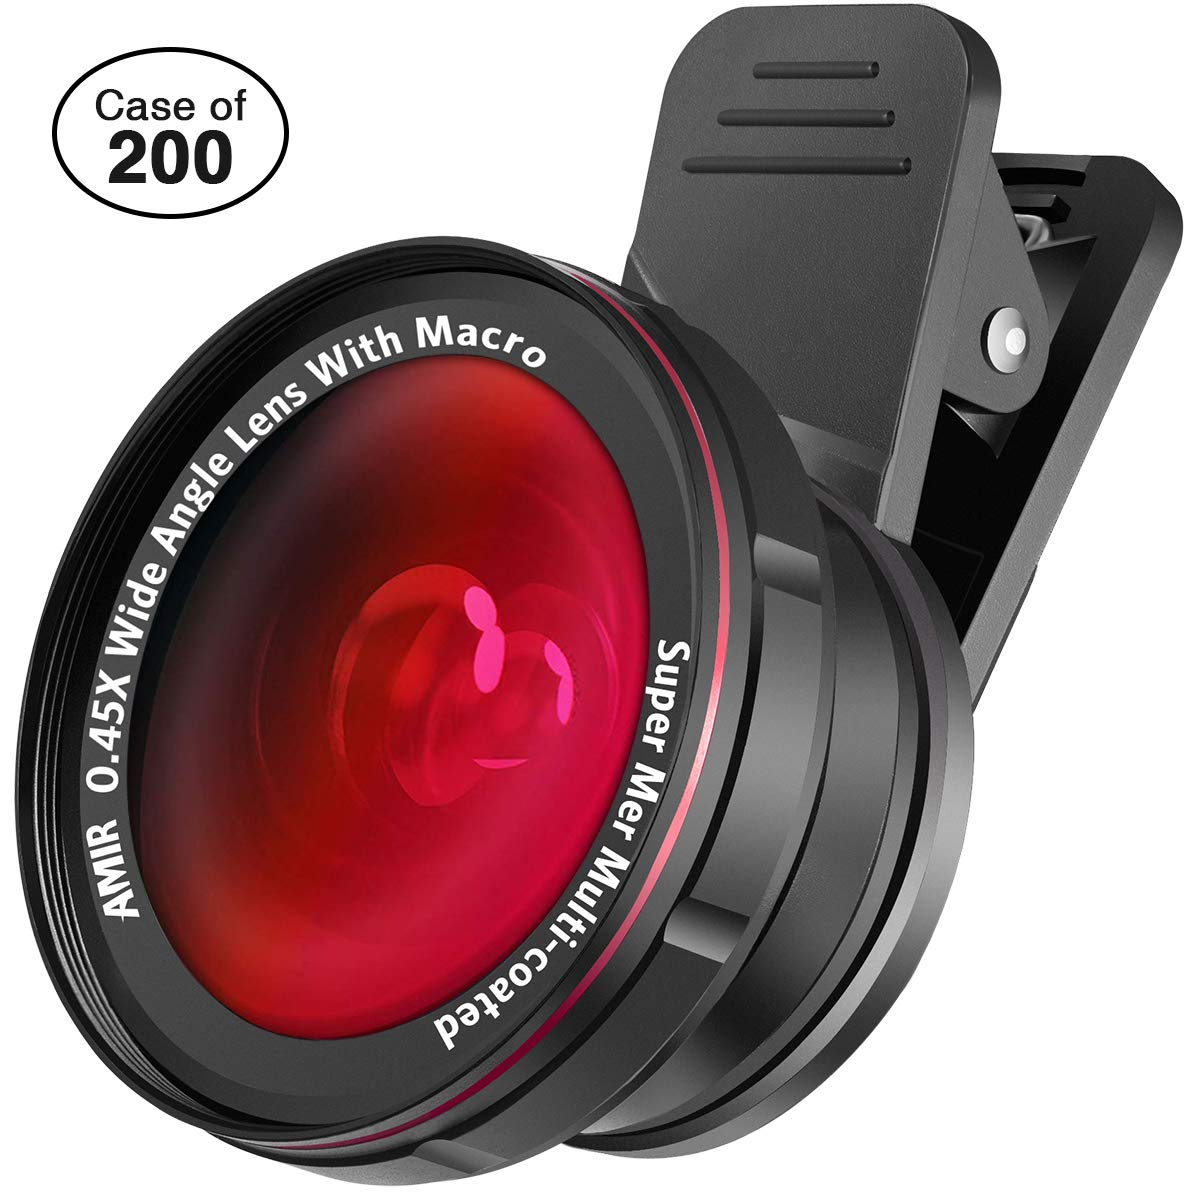 Case of 200 Packs, Cell Phone Lens Kit, 0.45X Wide Angle Lens + 15X Macro Lens for iPhone, 2 in 1 Clip-On Cell Phone Camera Lens for iPhone, Smartphones